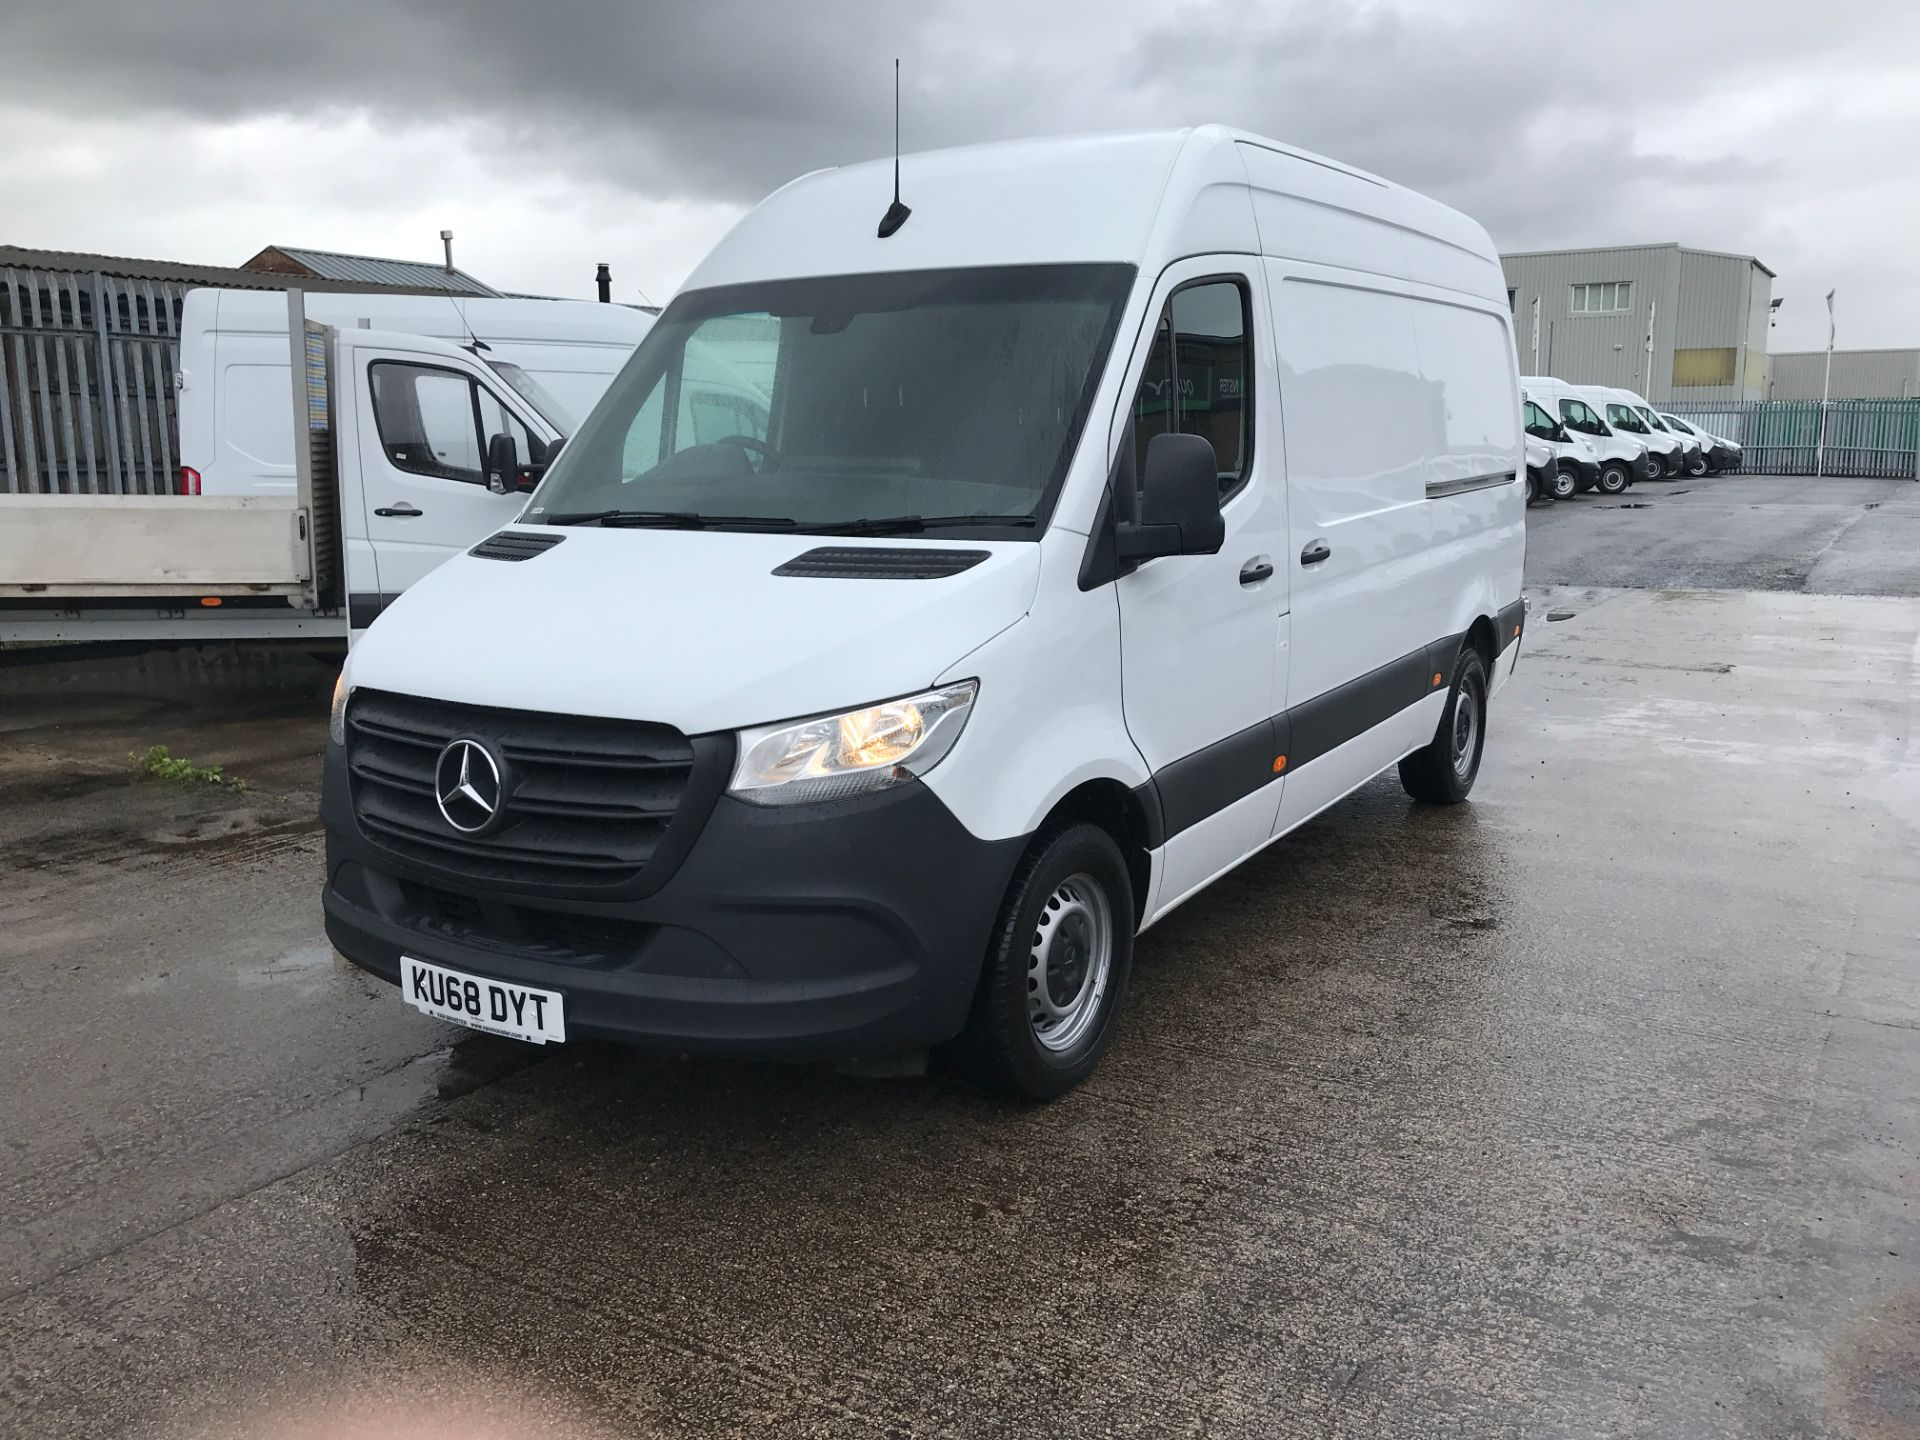 2018 Mercedes-Benz Sprinter 314CDI L2 H2 140PS EURO 6 (KU68DYT) Thumbnail 3